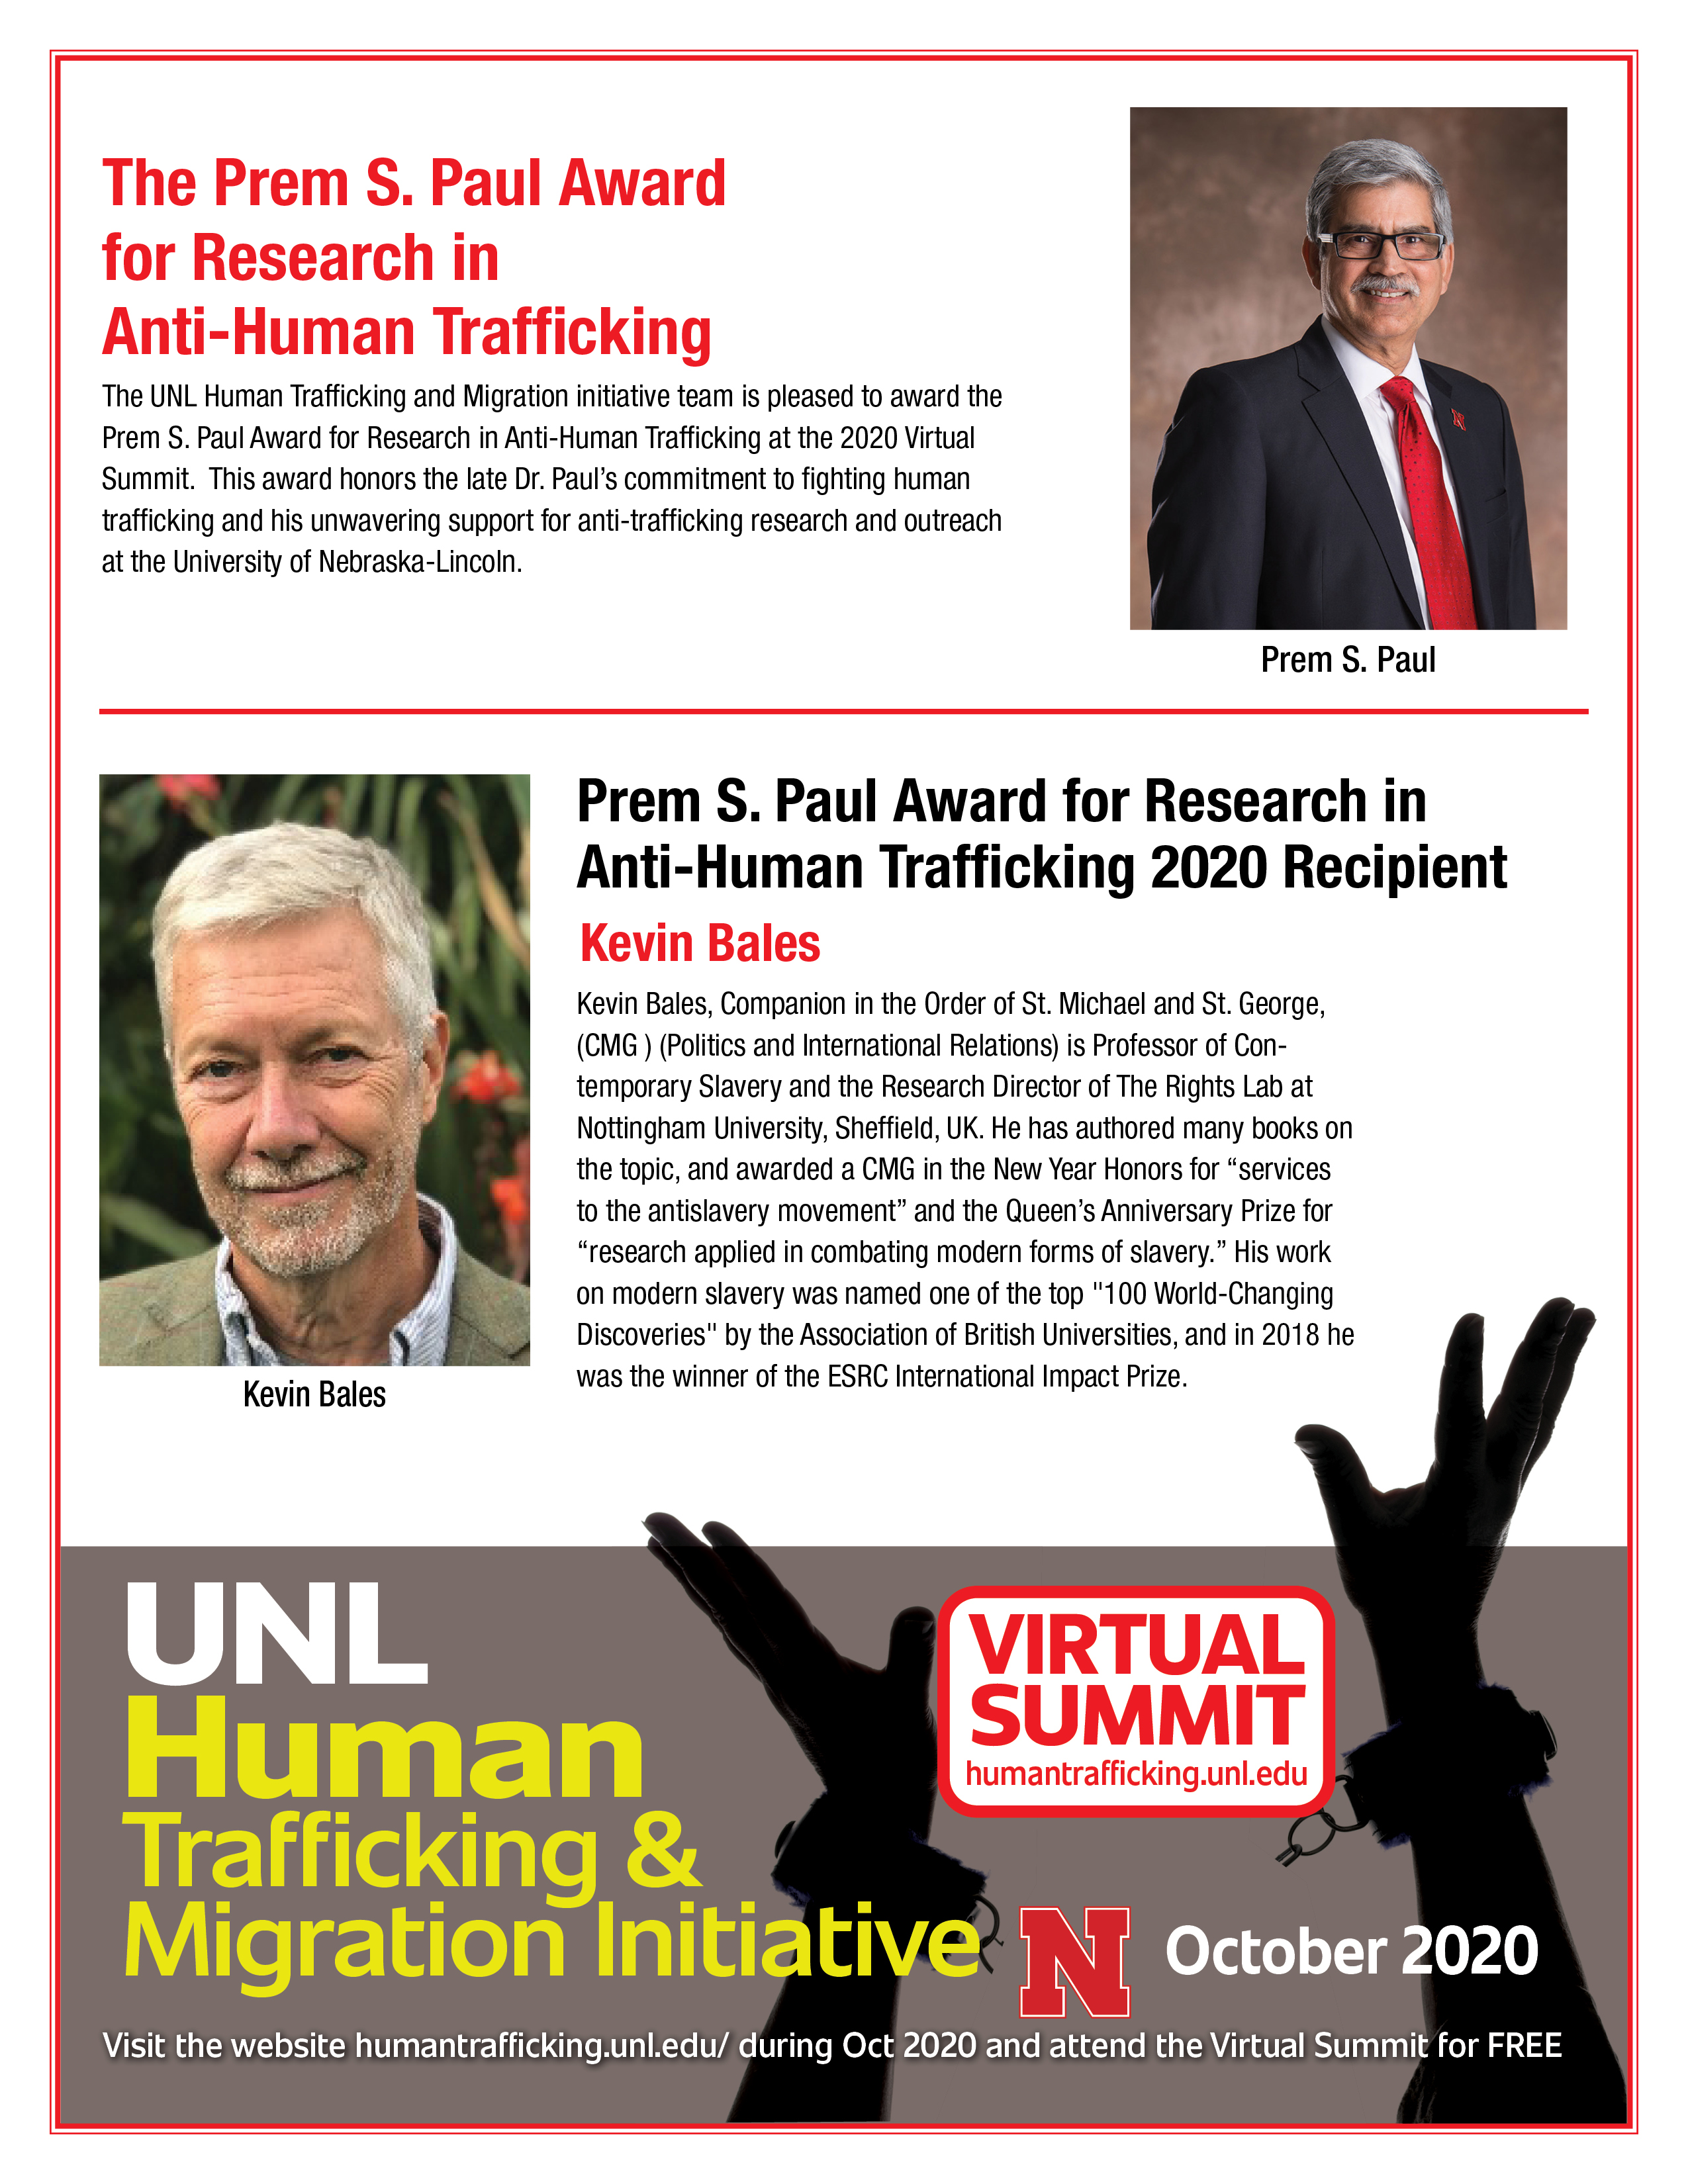 This Year (2020) the Prem S. Paul Award for Research in Anti-Human Trafficking goes to Kevin Bales. The UNL Human Trafficking and Migration initiative team is please to award the Prem S. Paul Award for Research in Anti-Human Trafficking at the 2020 Virtual Summit. This award honors the late Dr. Paul's commitment to fighting human trafficking and his unwavering support for anti-trafficking research and outreach at the University of Nebraska-Lincoln.